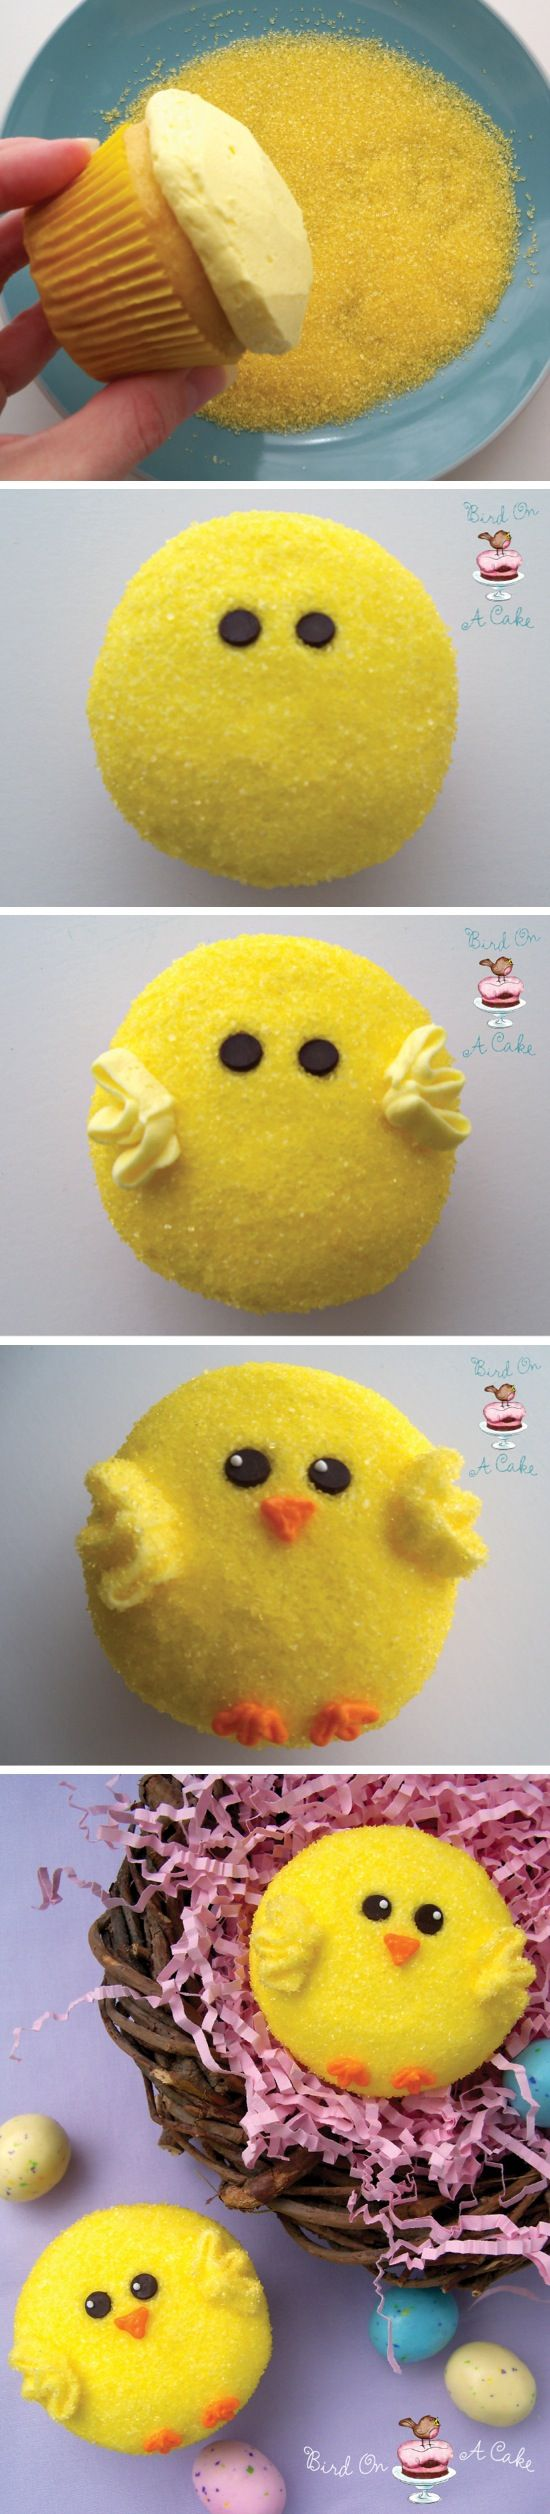 chicks, yellow chicks, easter chicks, Easter_Cupcakes, dessert, cupcakes, carrot, easter, holiday, buttercream, frosting, cupcake